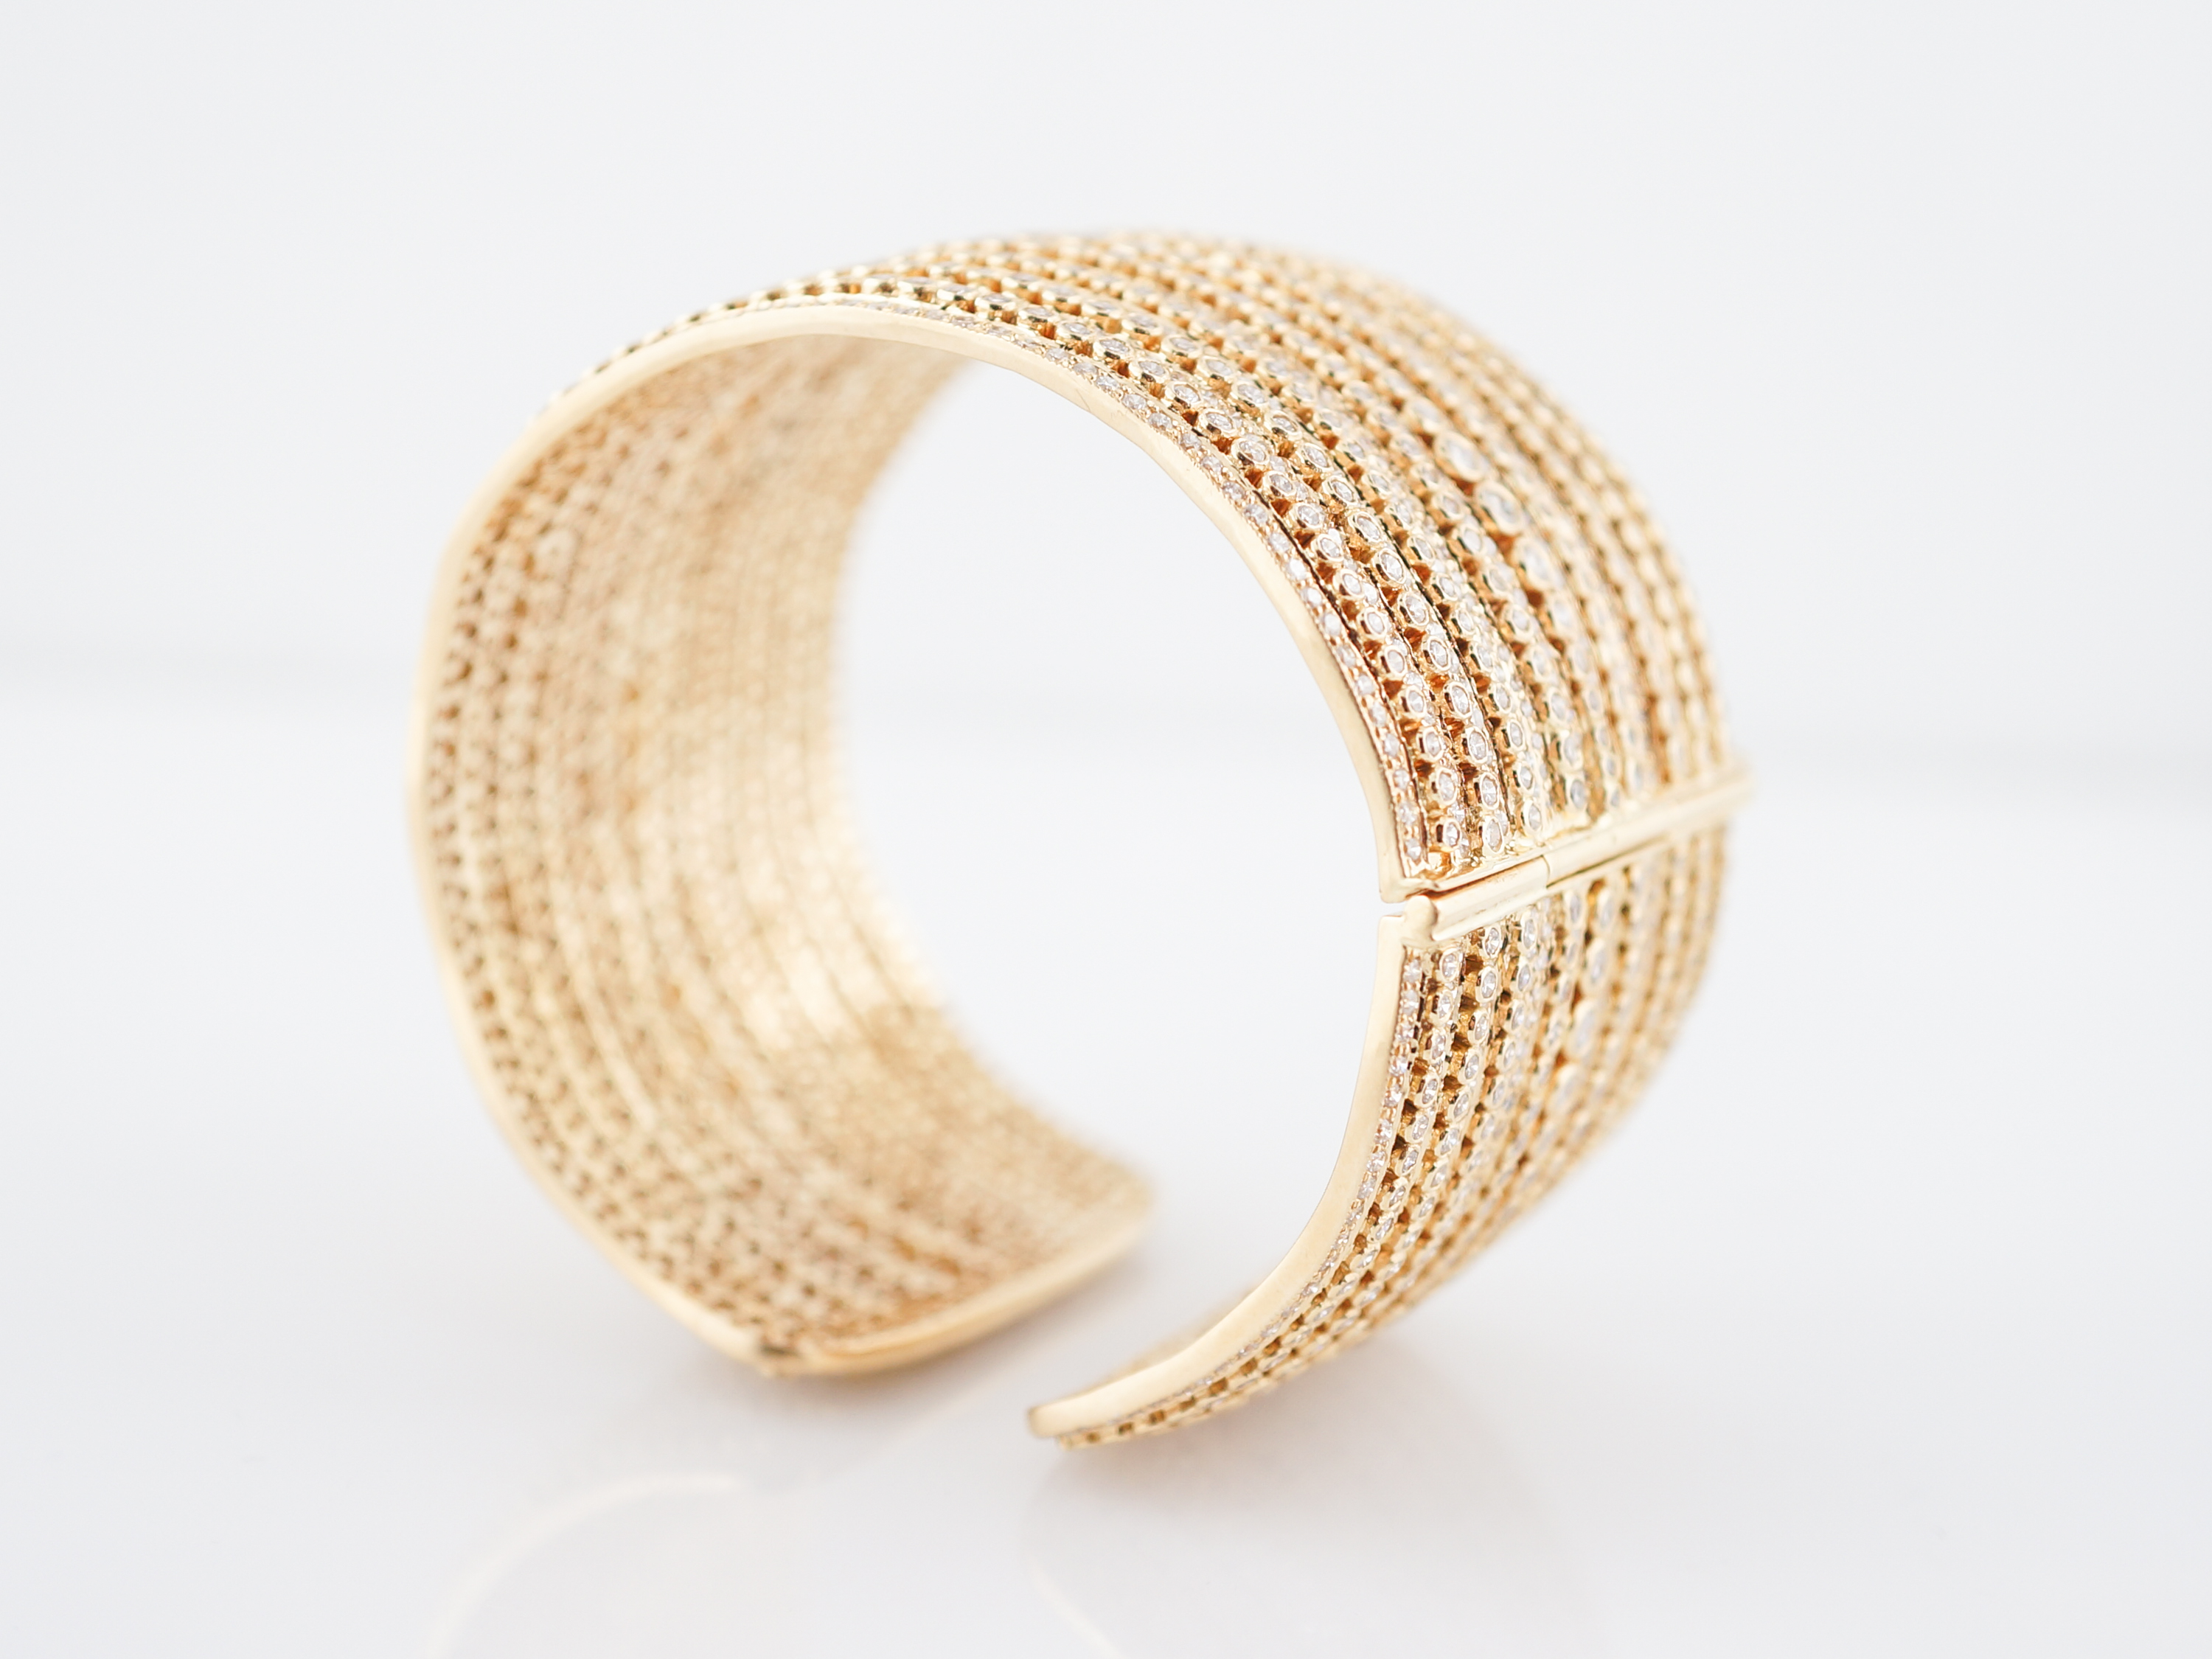 bangle aluminum anticlastic s inch johnsbrana bangles tapered brana john gold bracelet brushed products